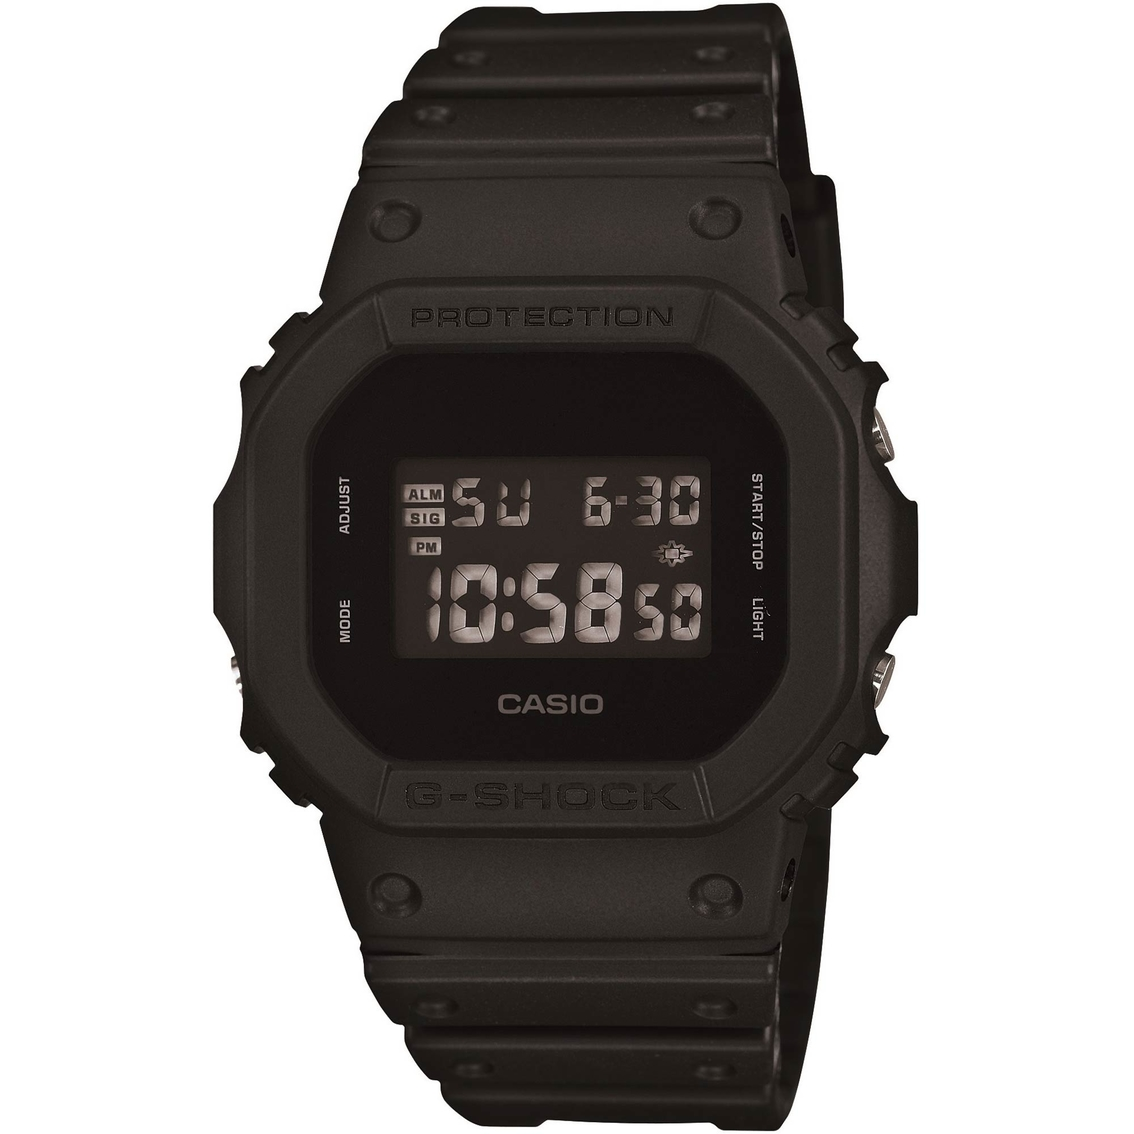 Casio Men's Baby G Shock 100M Tough Sport Model Watch DW 5600BB 1CK